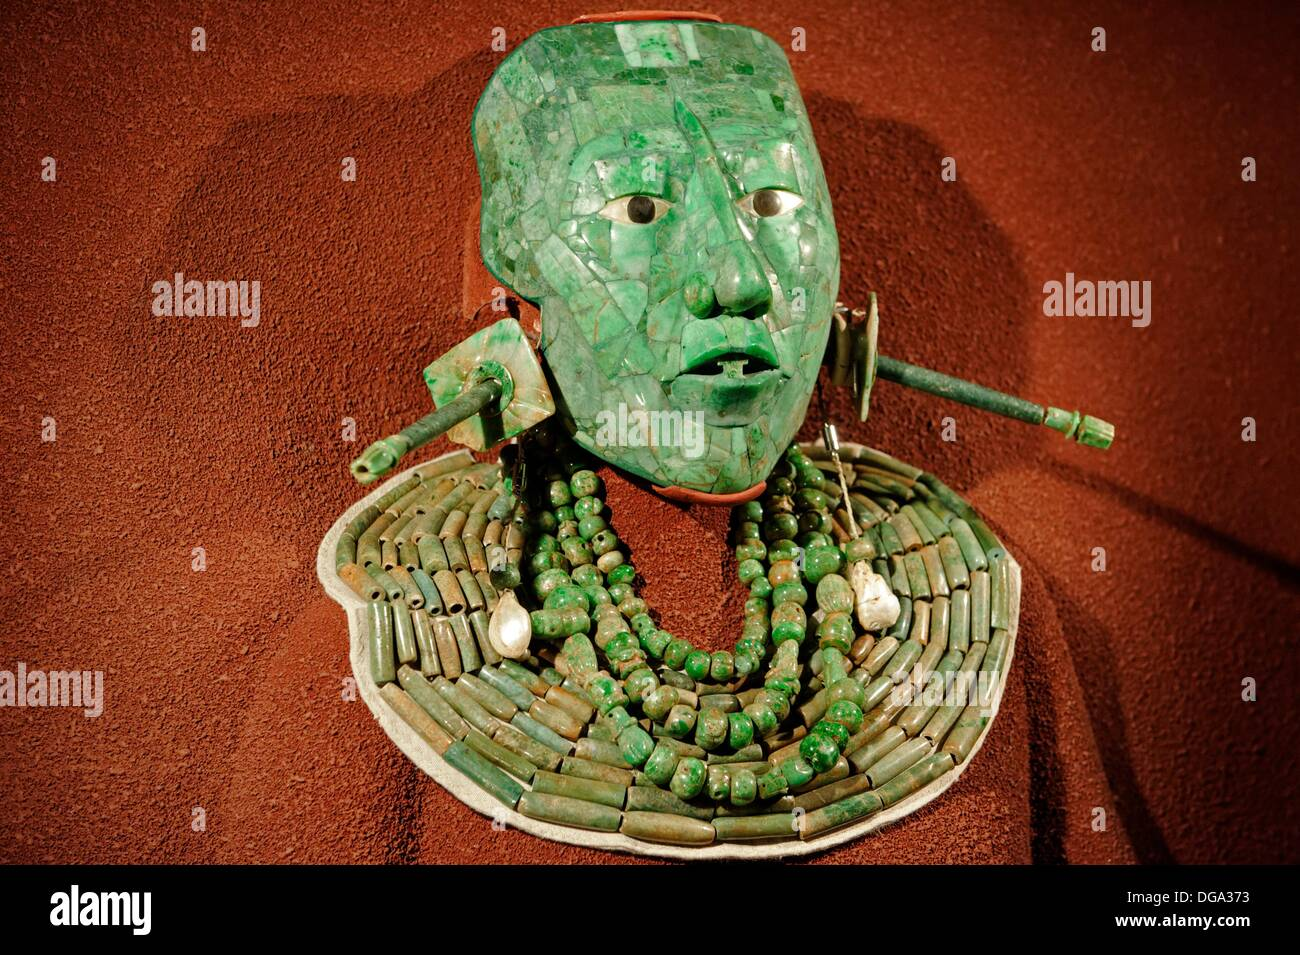 Jade death mask of Mayan king Pacal Maya Culture. The National Museum of Anthropology Museo Nacional de Antropología. Mexico - Stock Image